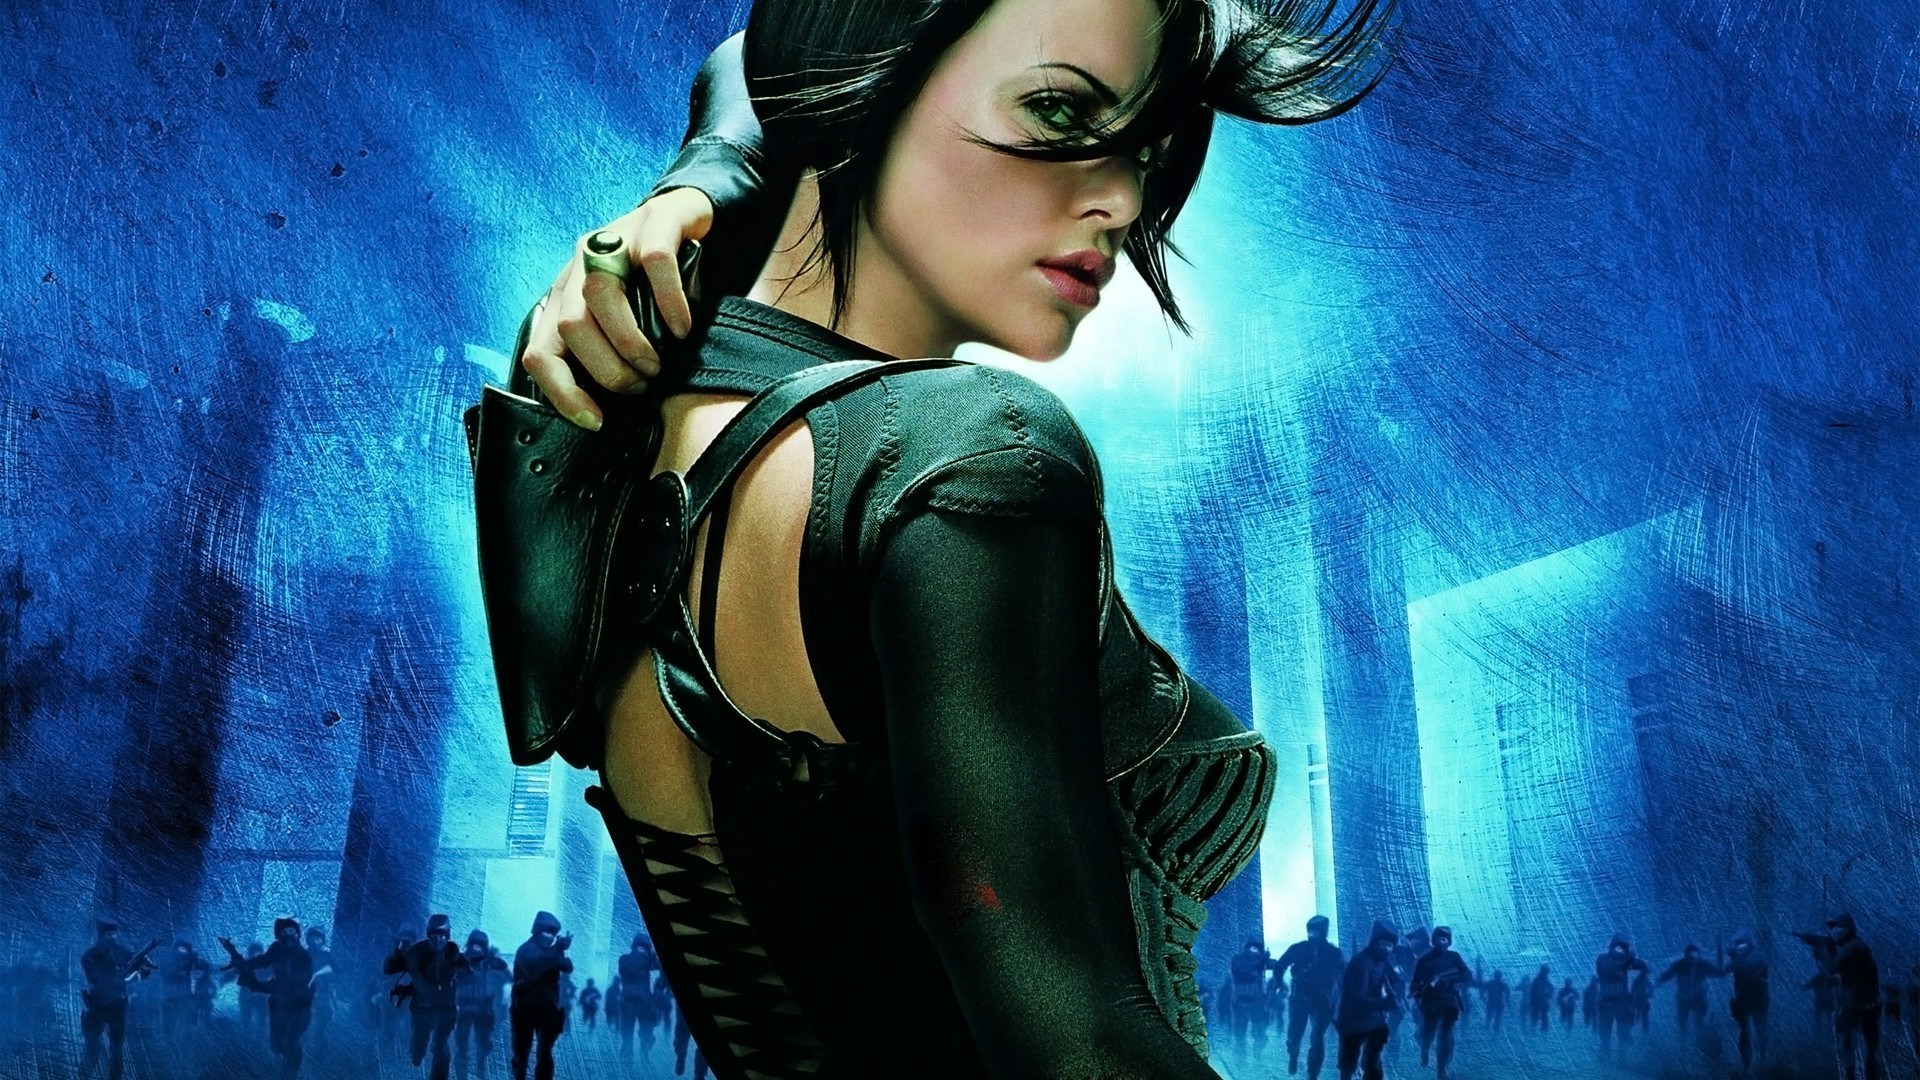 Res: 1920x1080, movies, Aeon Flux, Charlize Theron